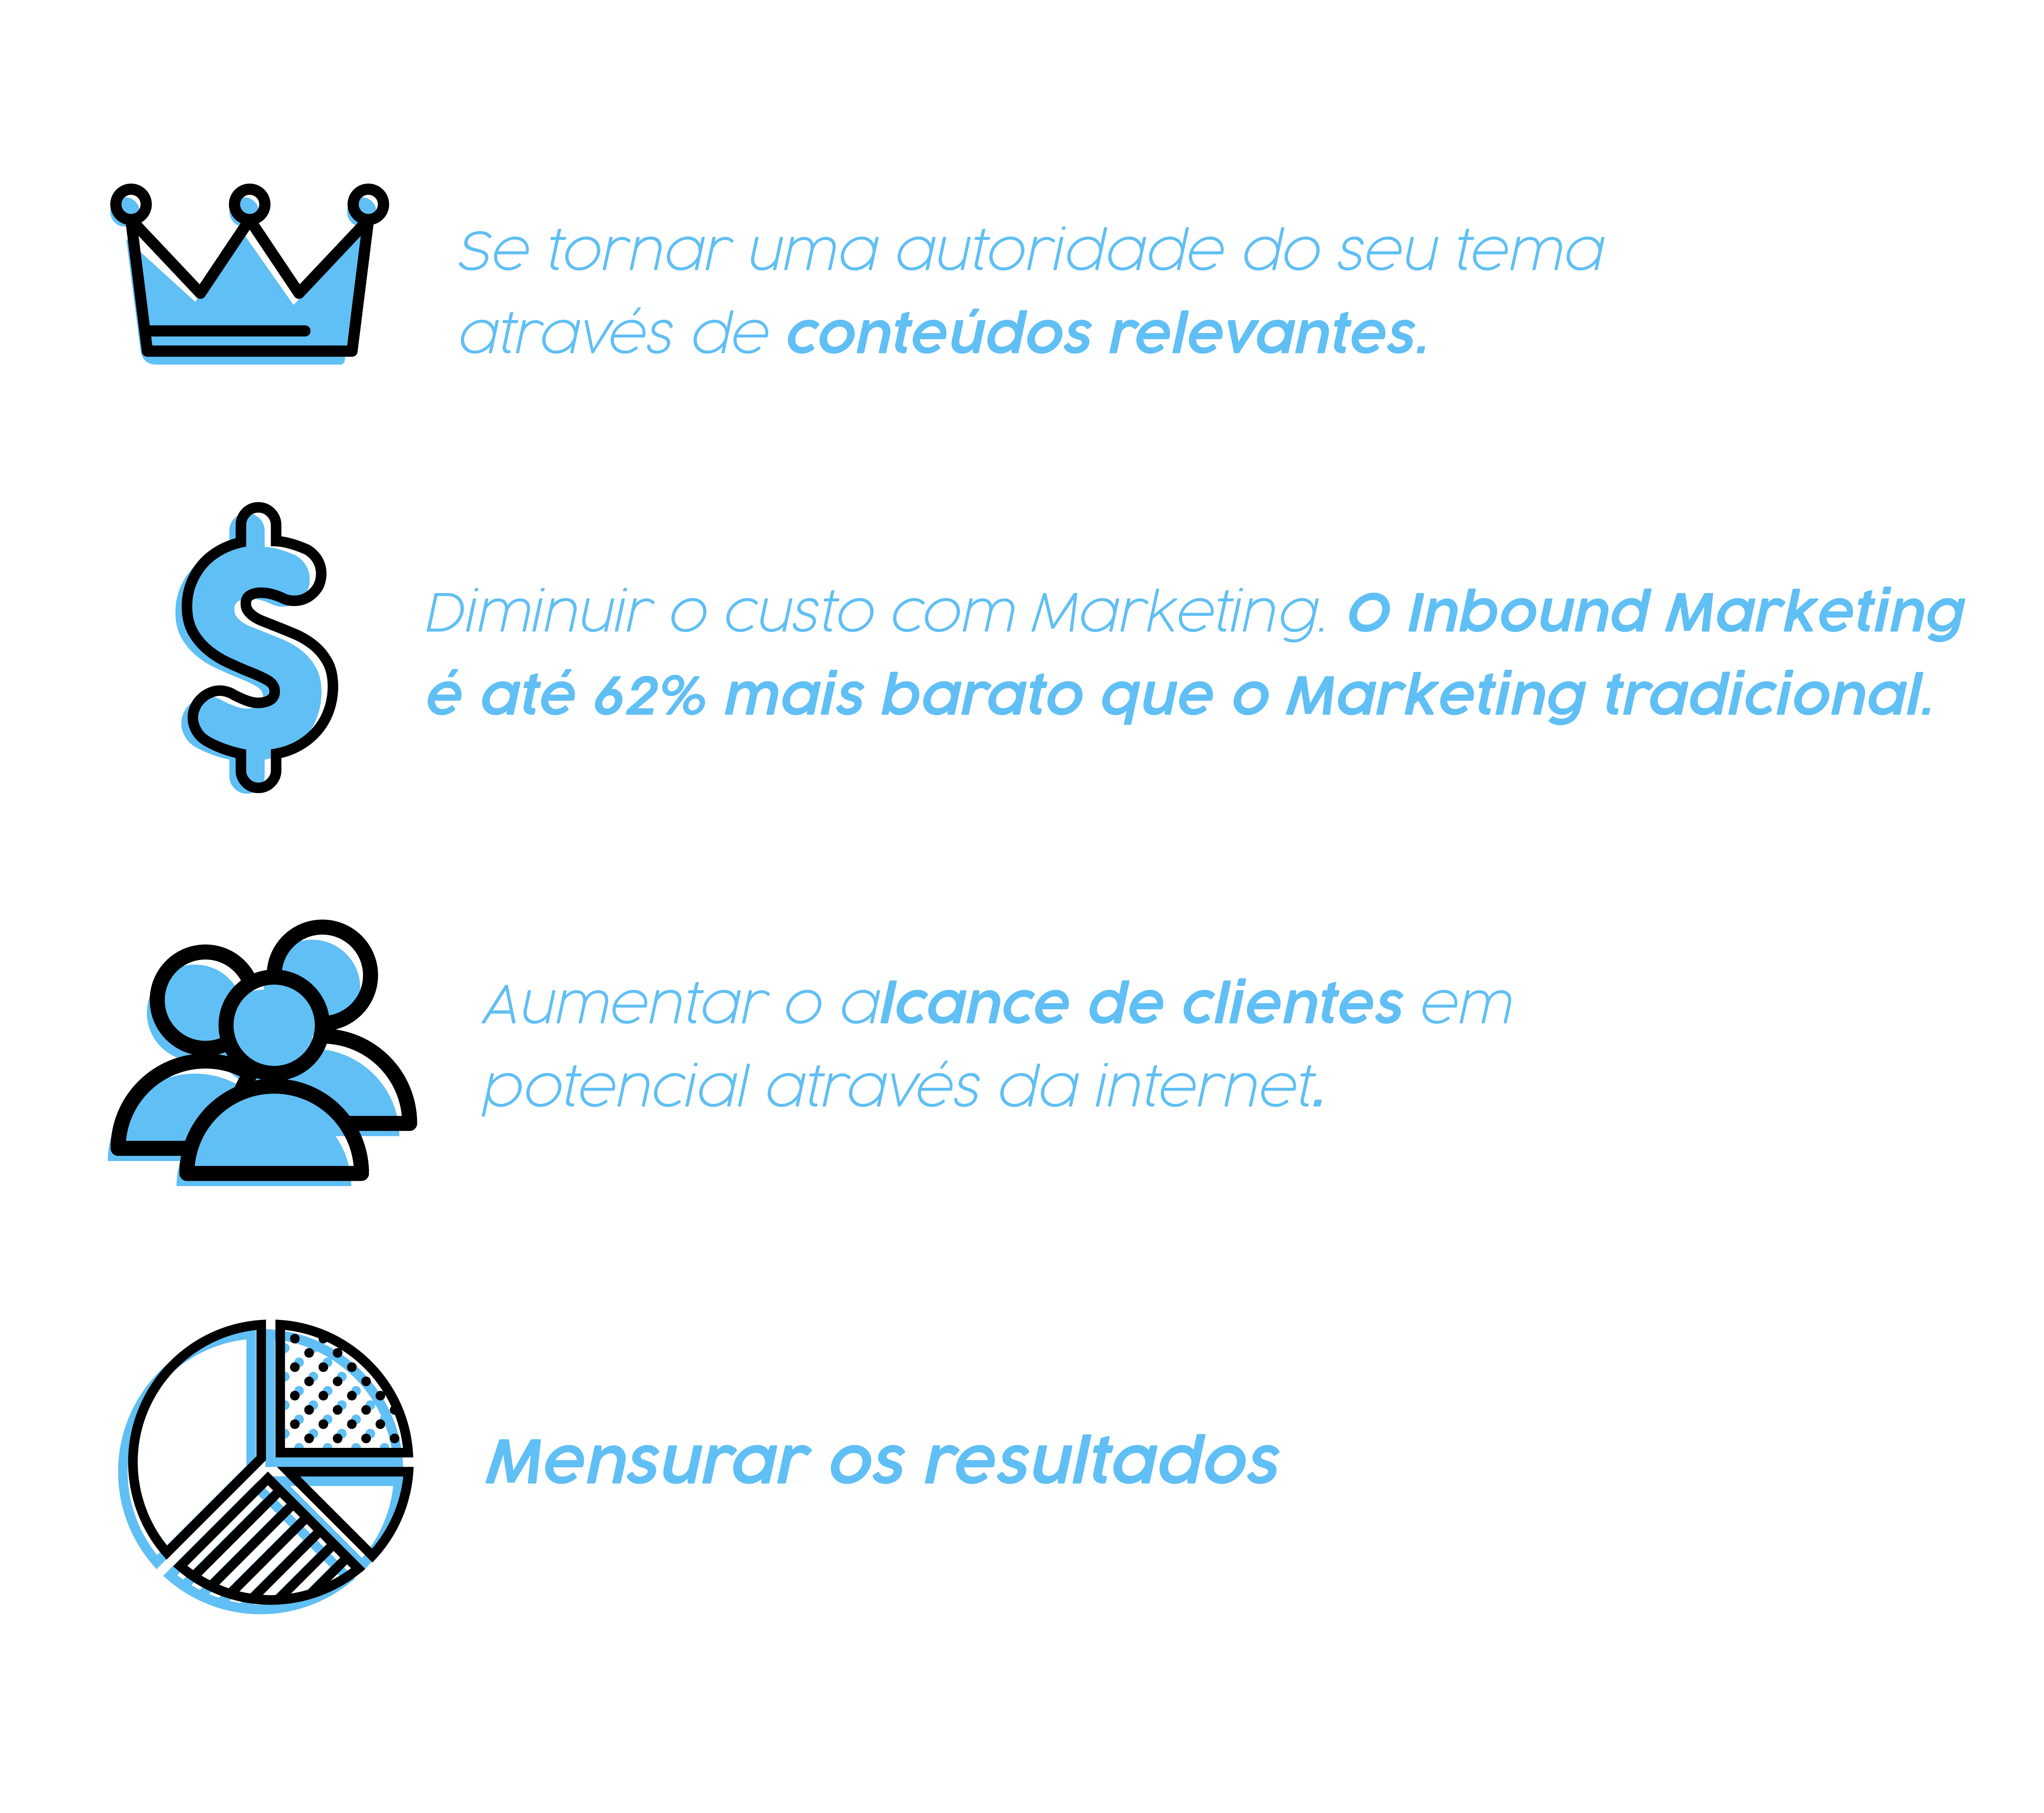 Vantagens de utilizar o Inbound Marketing